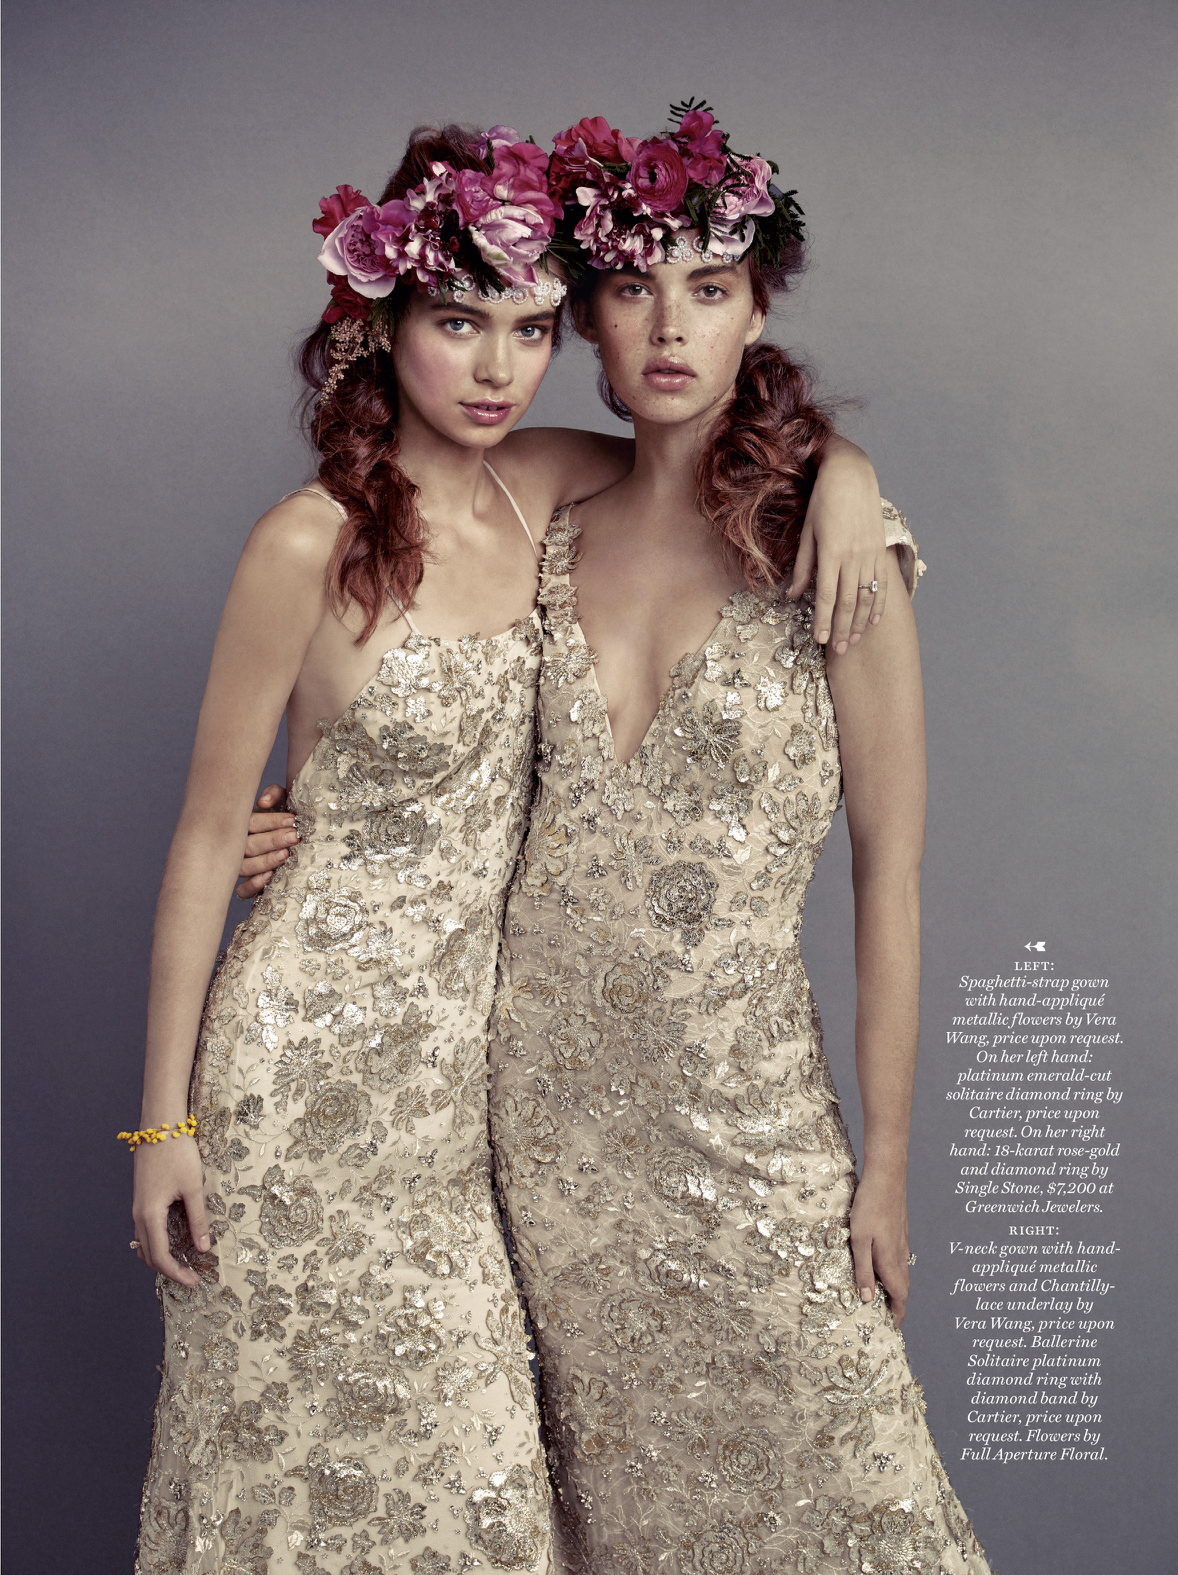 Full Aperture Floral and New York Magazine